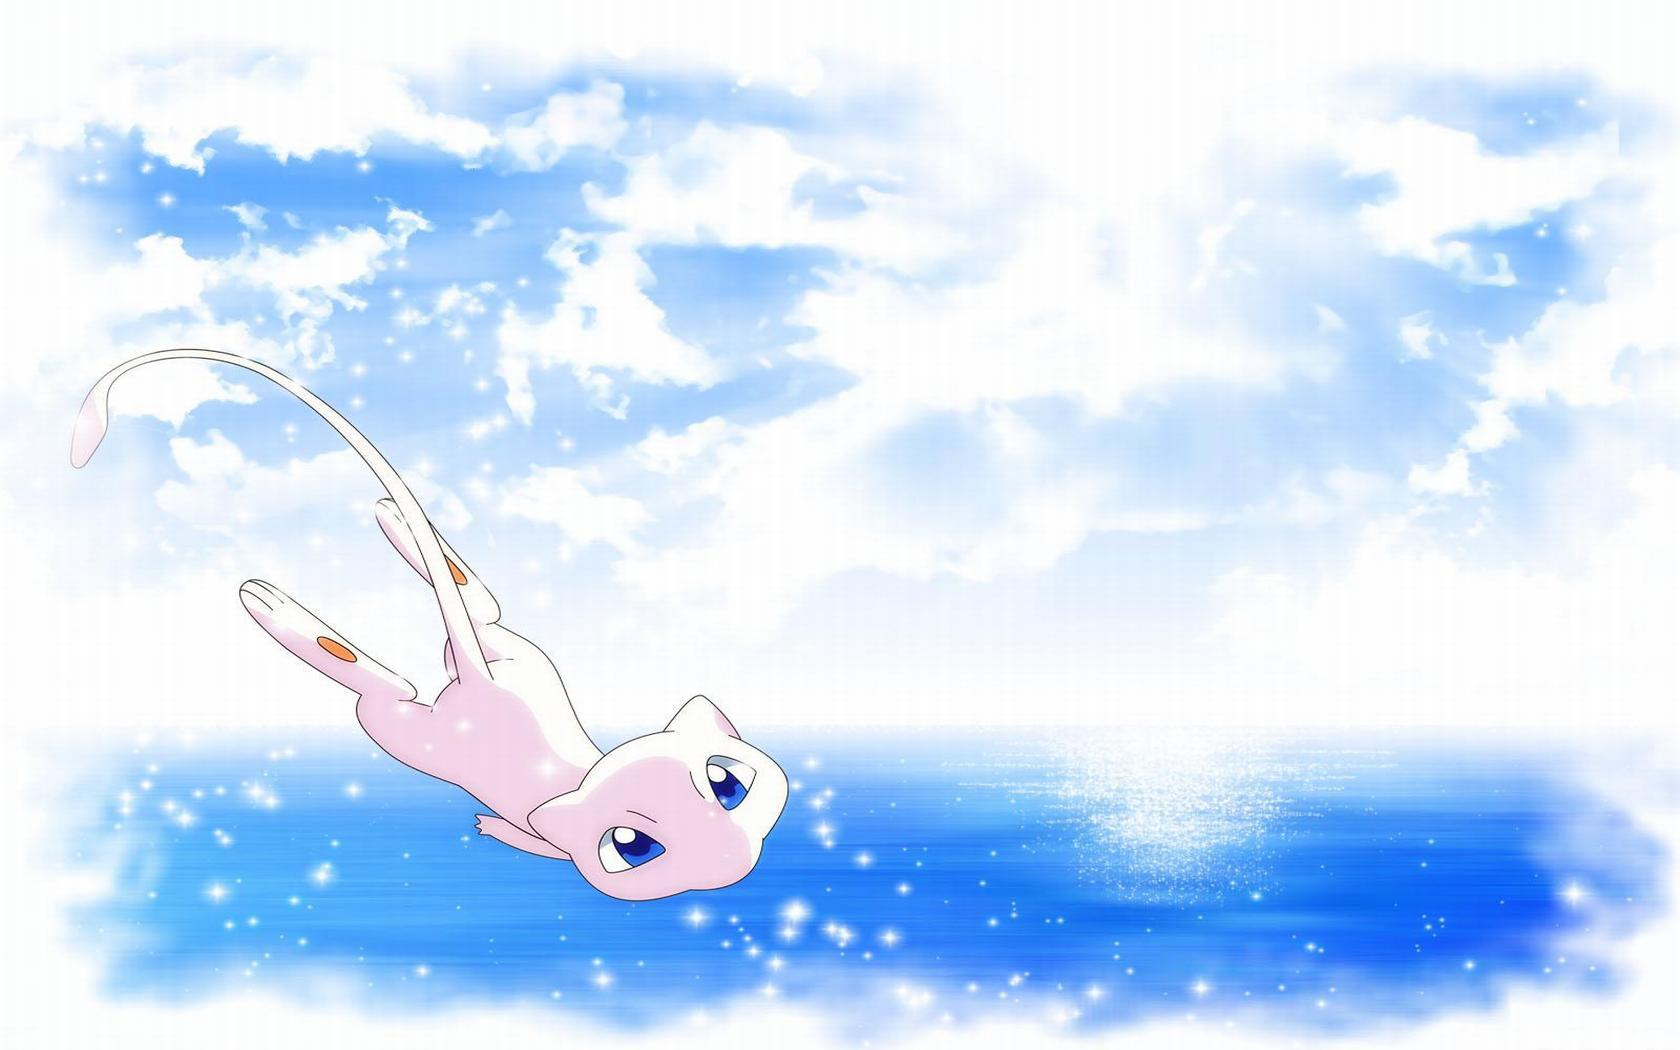 Pokemon Mew Wallpapers - Wallpaper Cave